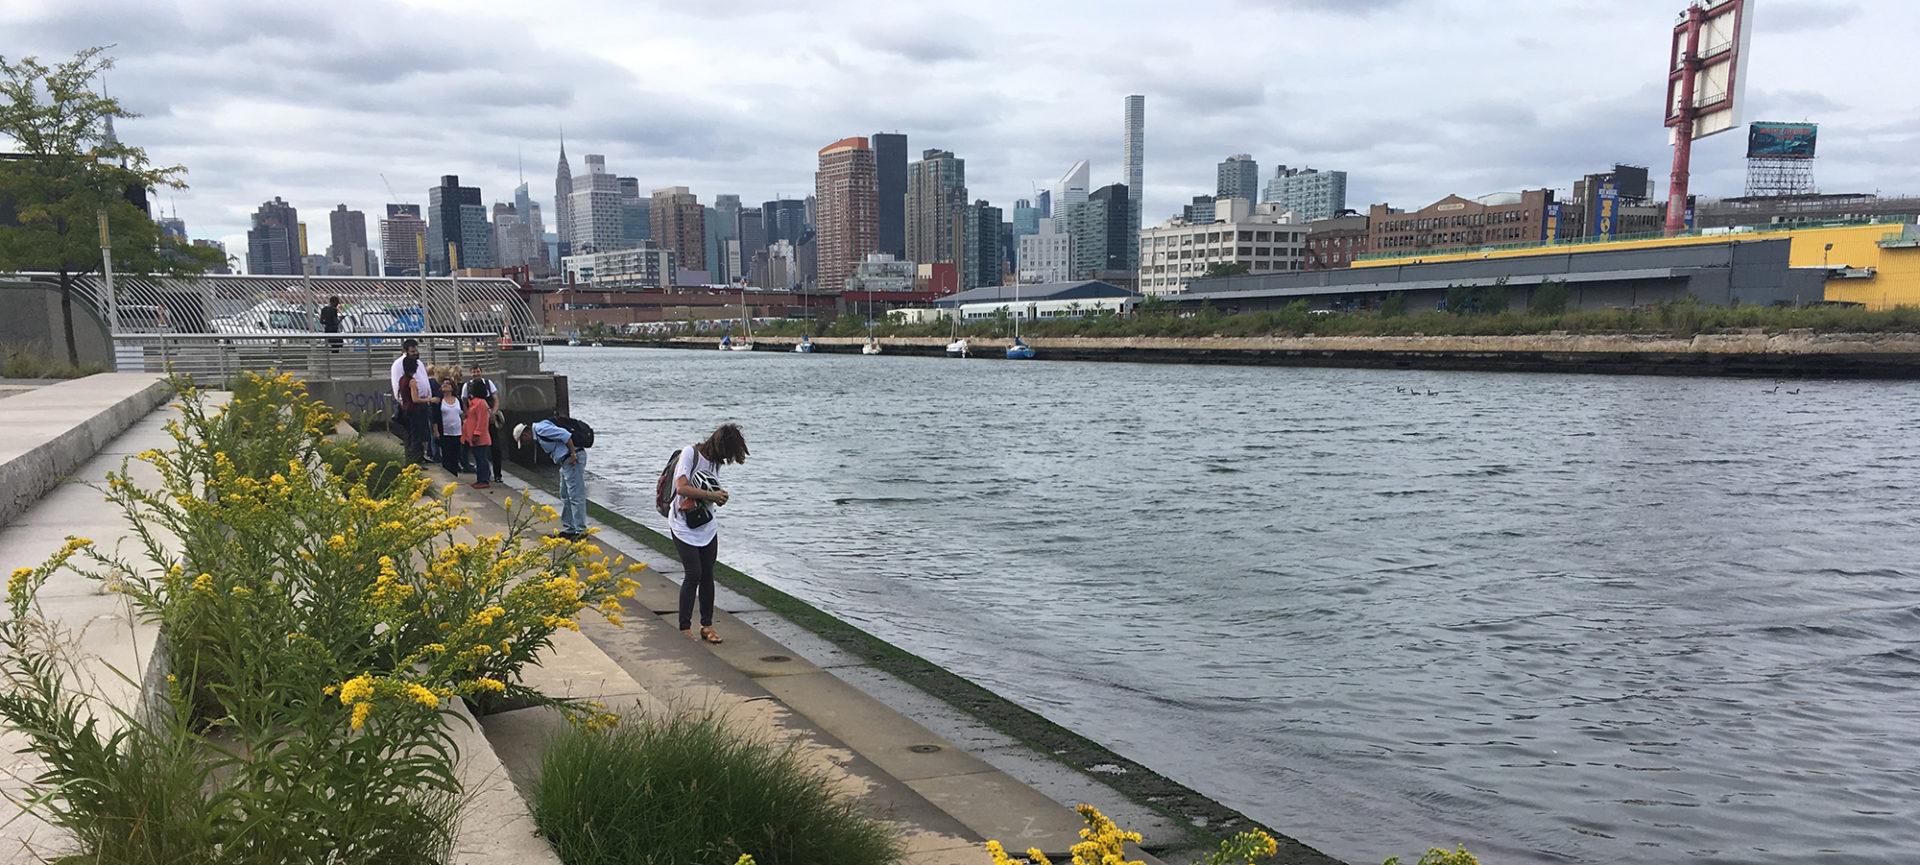 On the Newtown Creek waterfront, with industrial landscape and Manhattan. Image courtesy of the Newtown Creek Alliance.